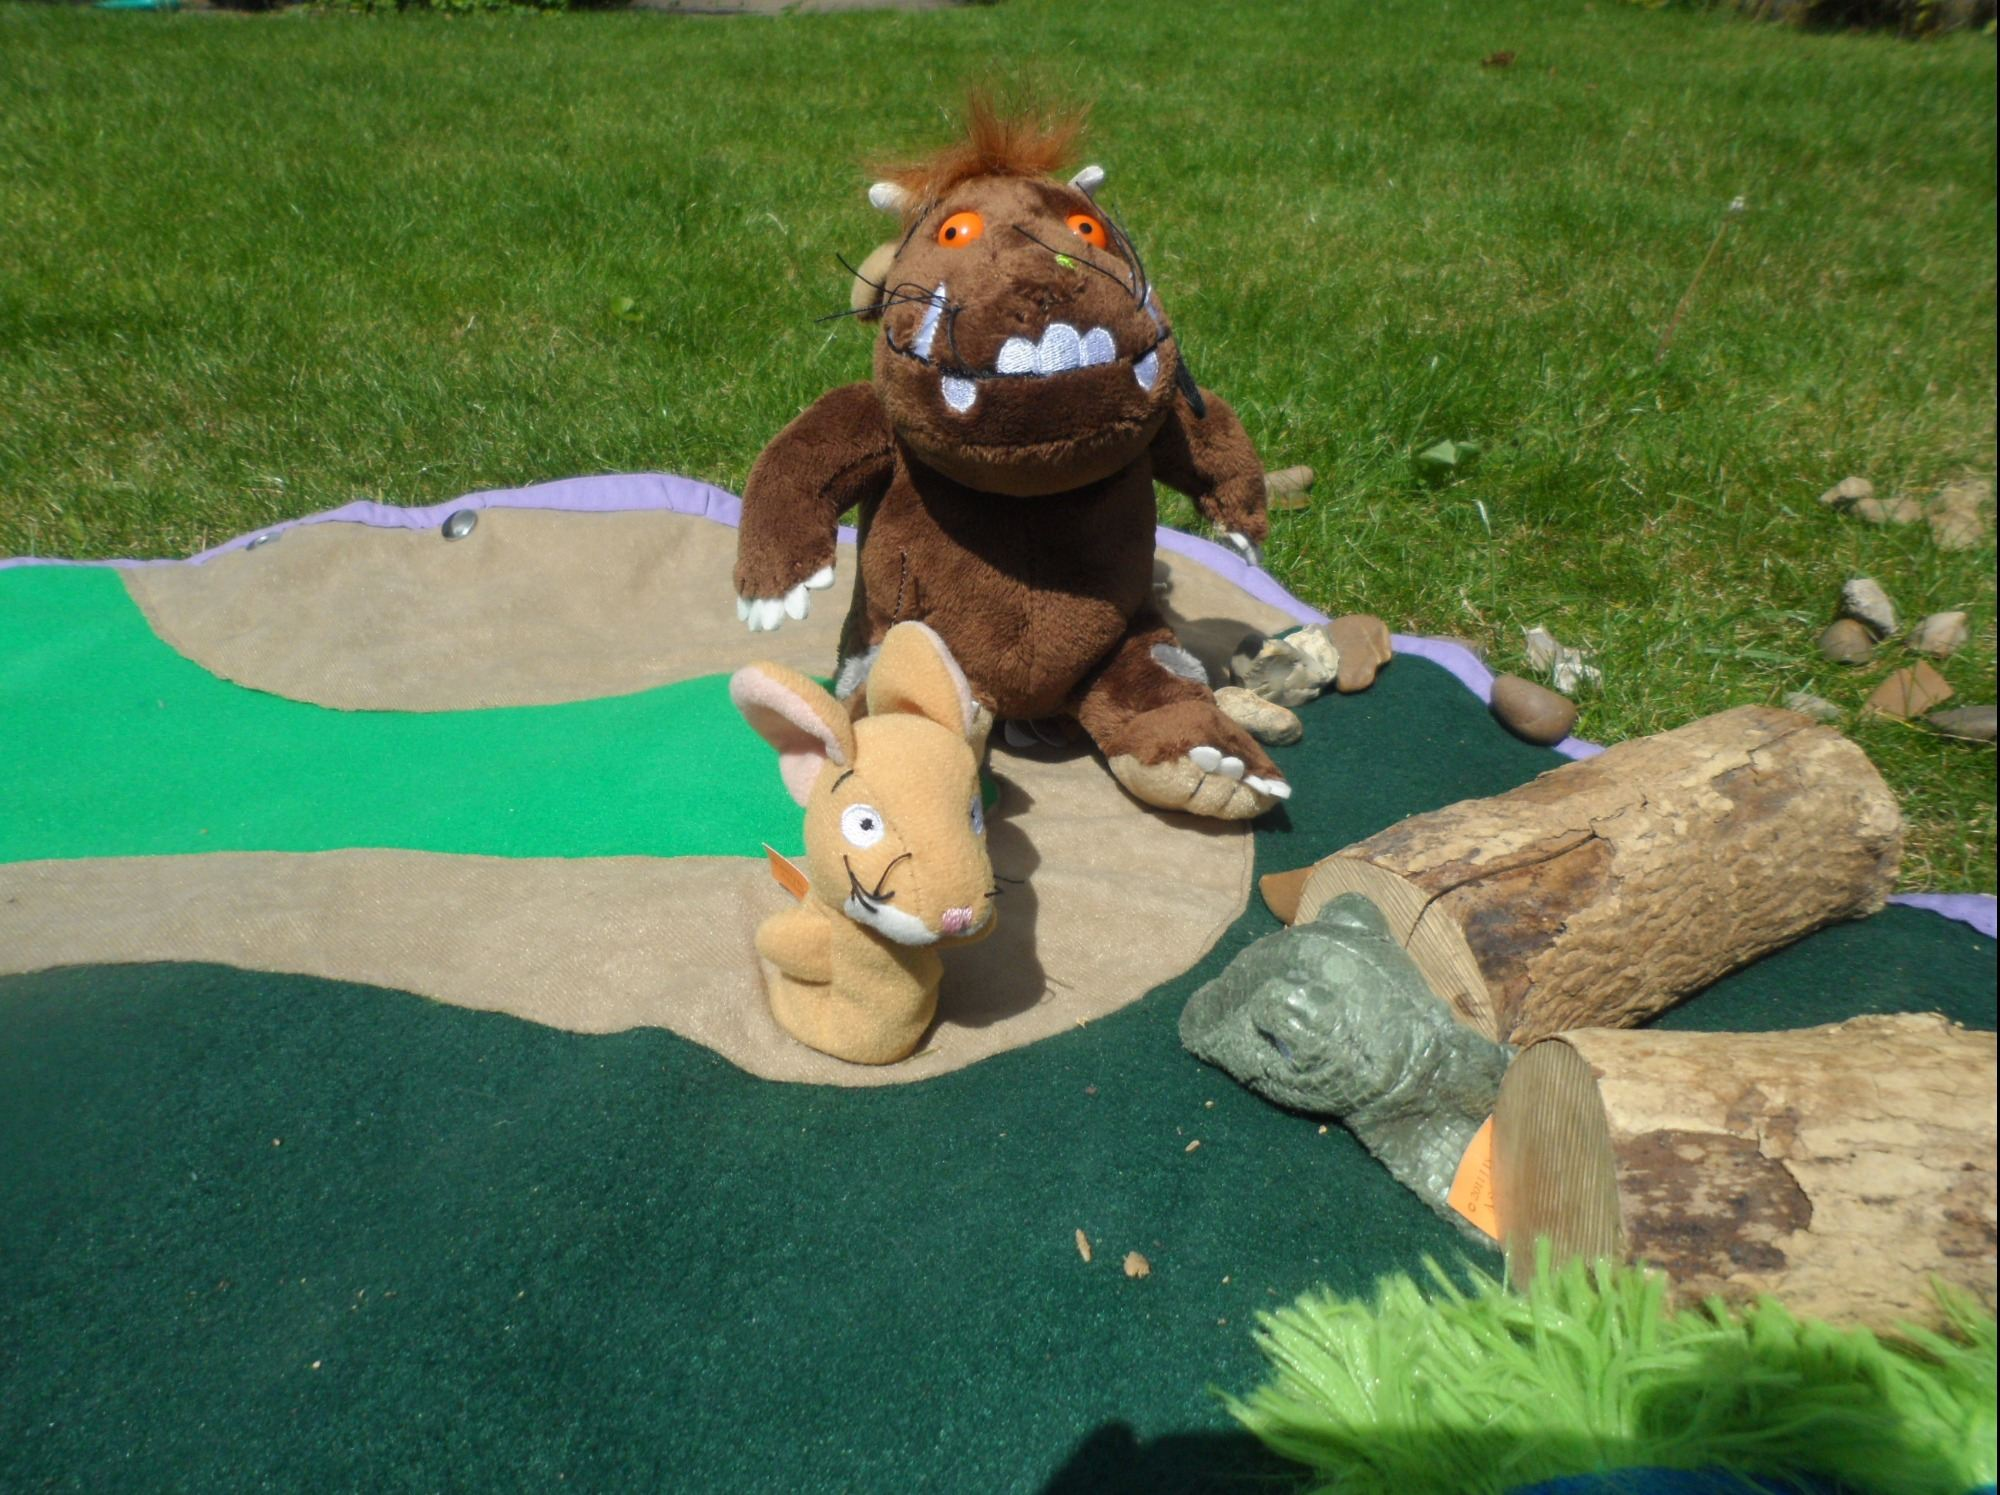 The Gruffalo story re-enacted on The Shire PlayBag